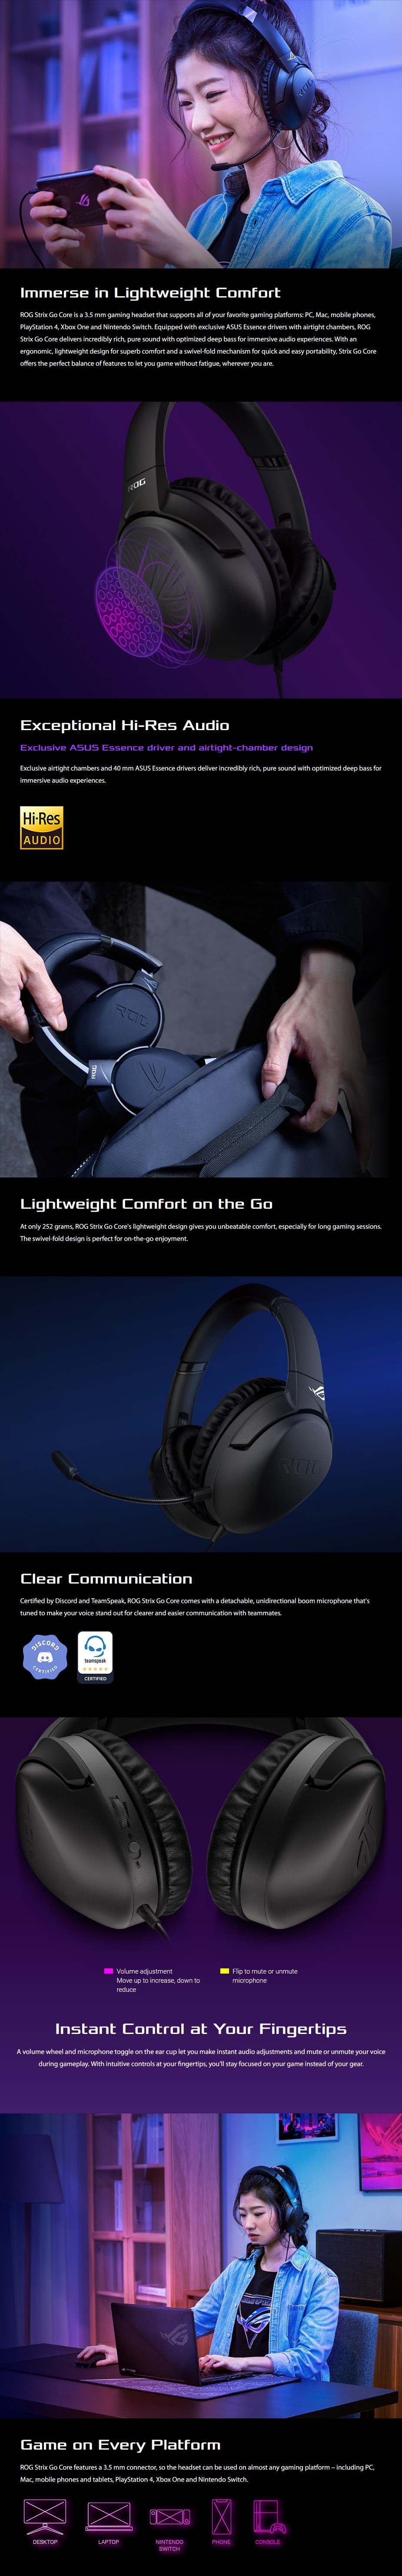 asus-rog-strix-go-core-wired-gaming-headset-ac39677-4.jpg